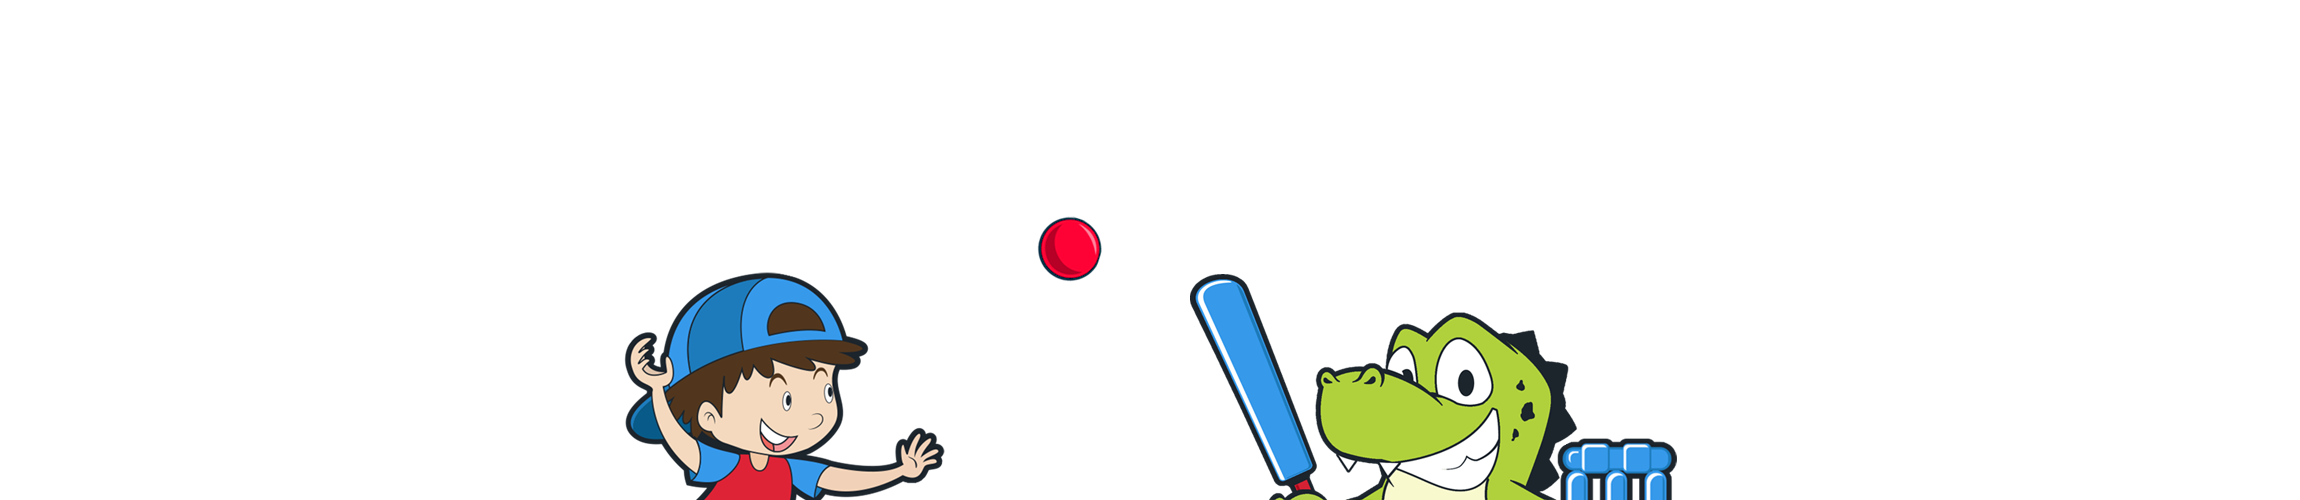 Coach clipart cricket coach. Faqs crocs kids coaching